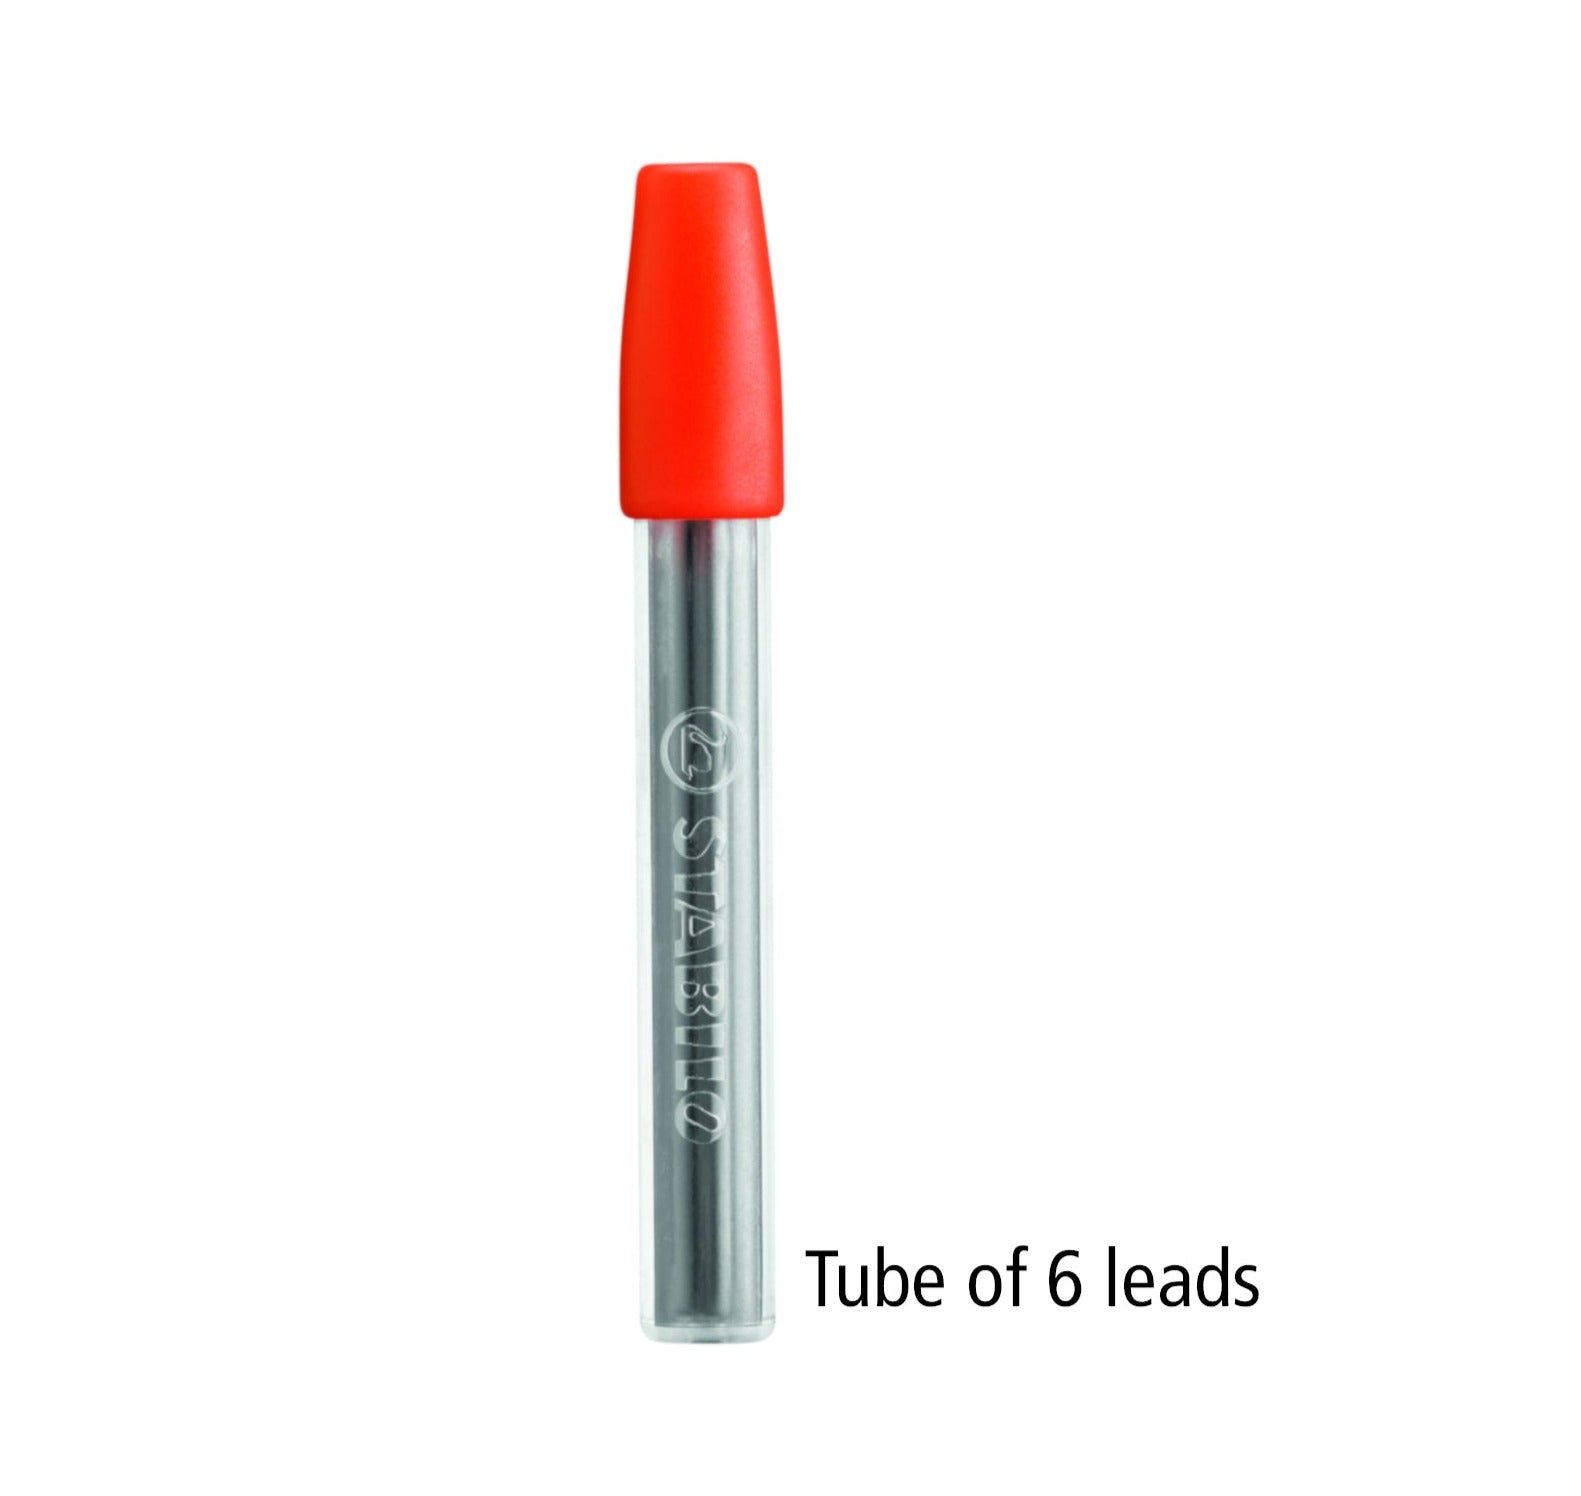 STABILO EASYergo 1.4 Lead Refills - Schwan-STABILO -Most colourful Stationery Shop